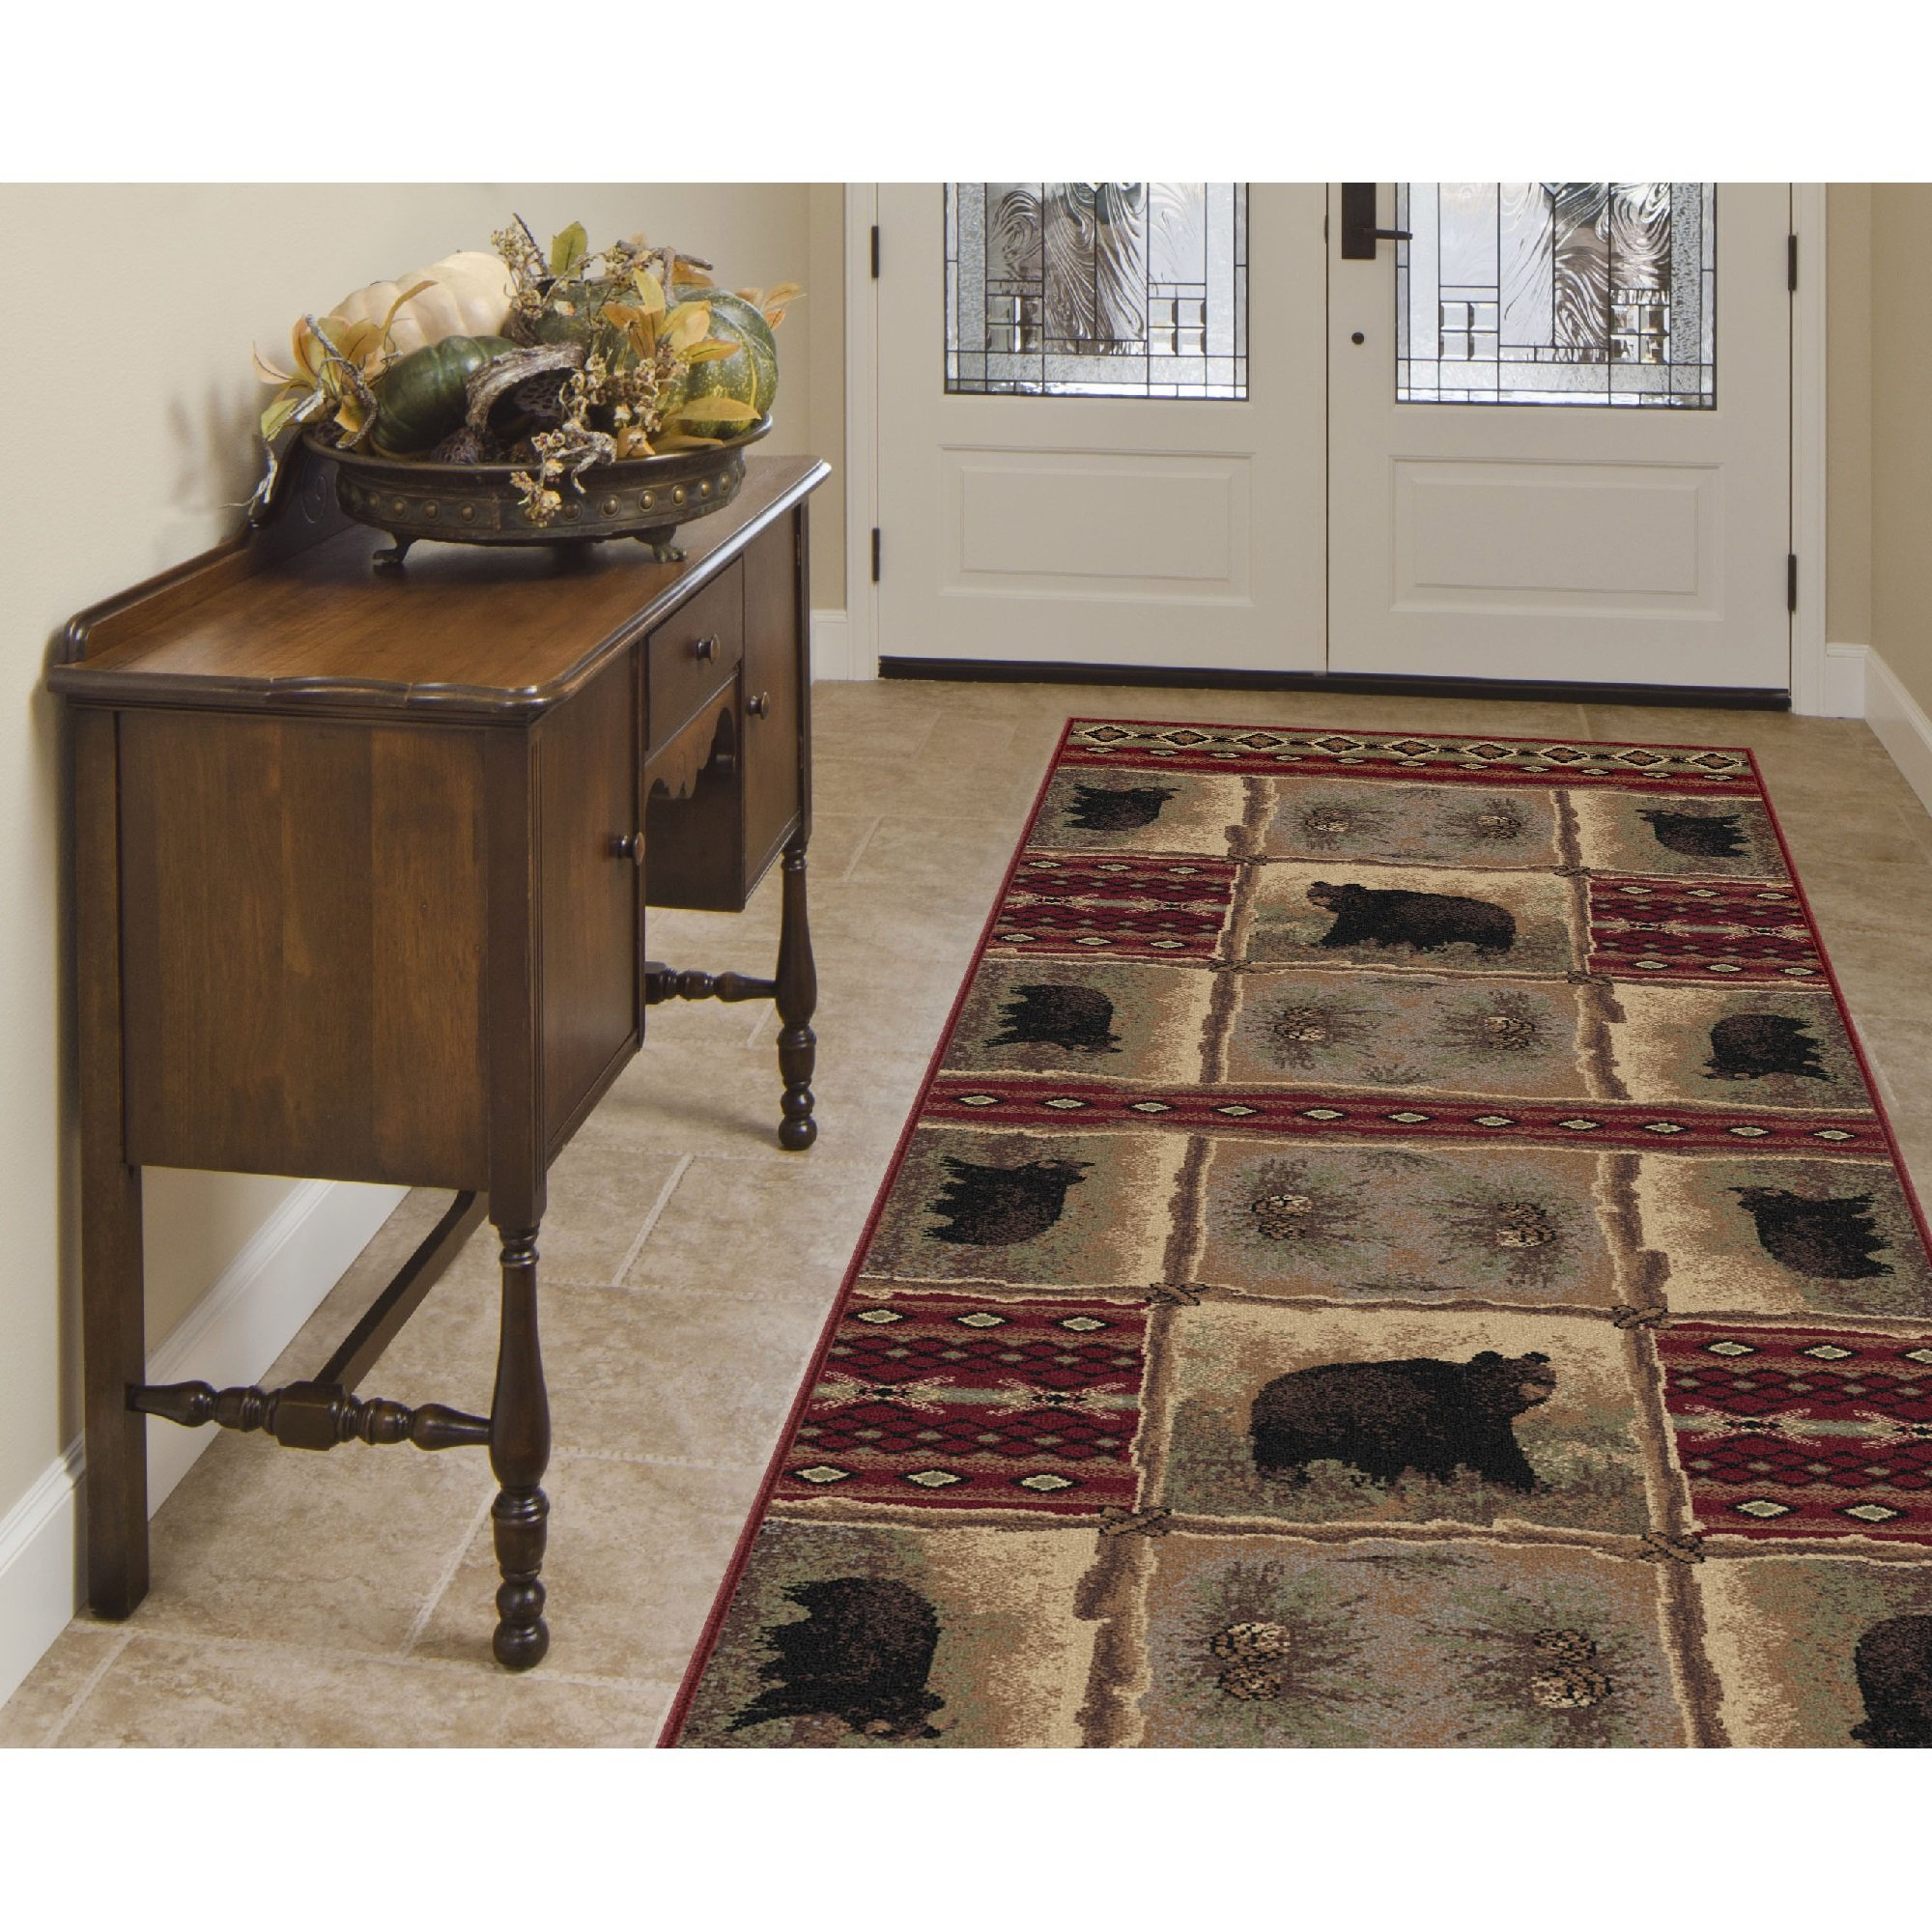 Tribal Geometric Blocks Patterned Area Rug, Exotic Flowers Geo Circles Bears Themed, Runner Indoor Hallway Doorway Living Area Bedroom Cabin Carpet, Western Animal Lovers Design, Red, Size 2'7 x 7'3